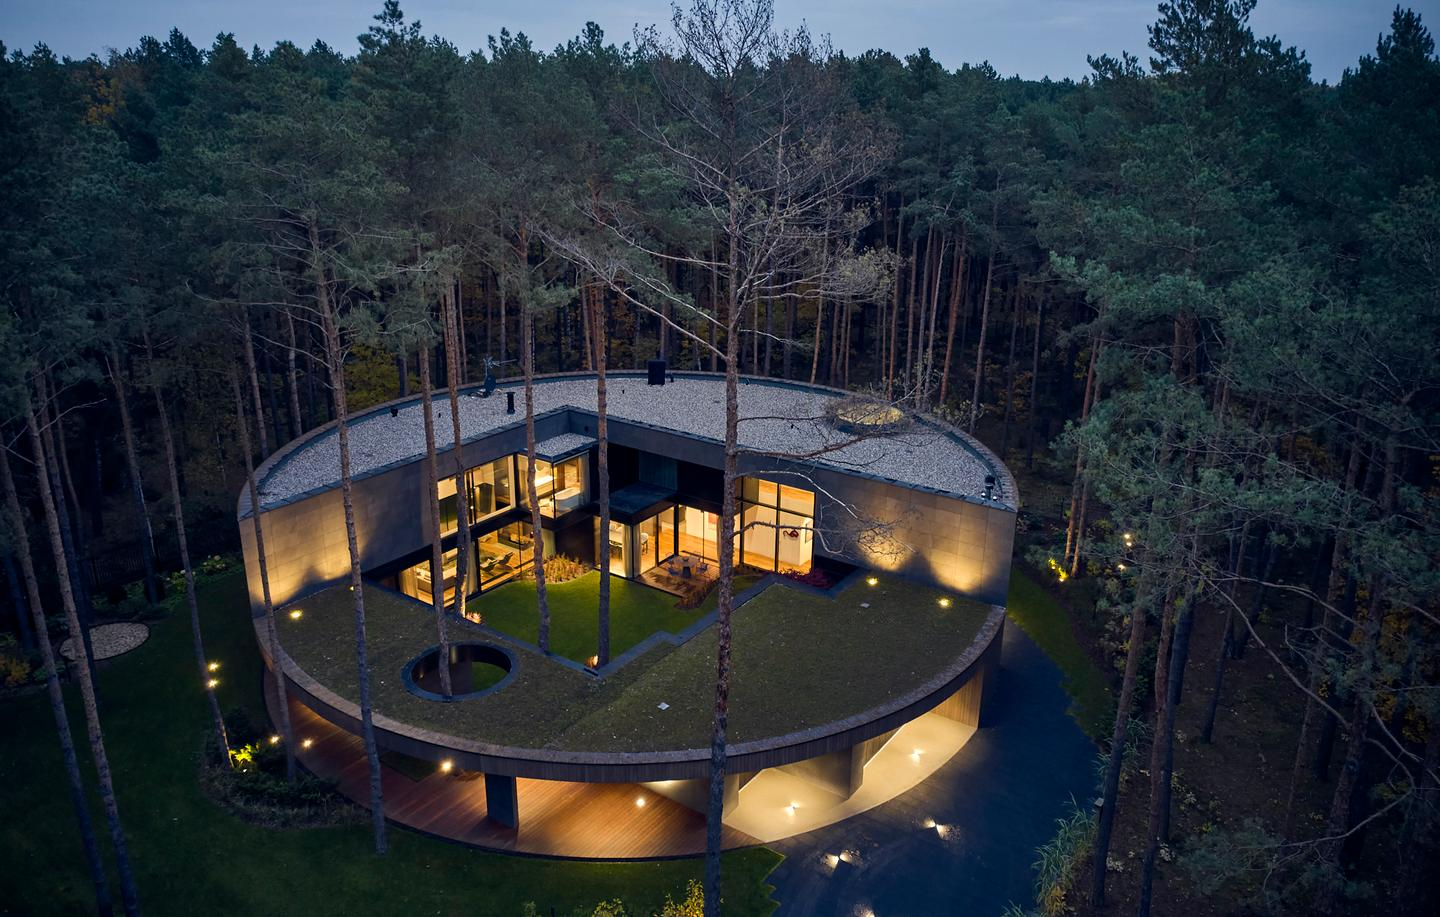 Circle Wood consists of a reinforced concrete structure that's clad in Okume wood sourced from West Africa